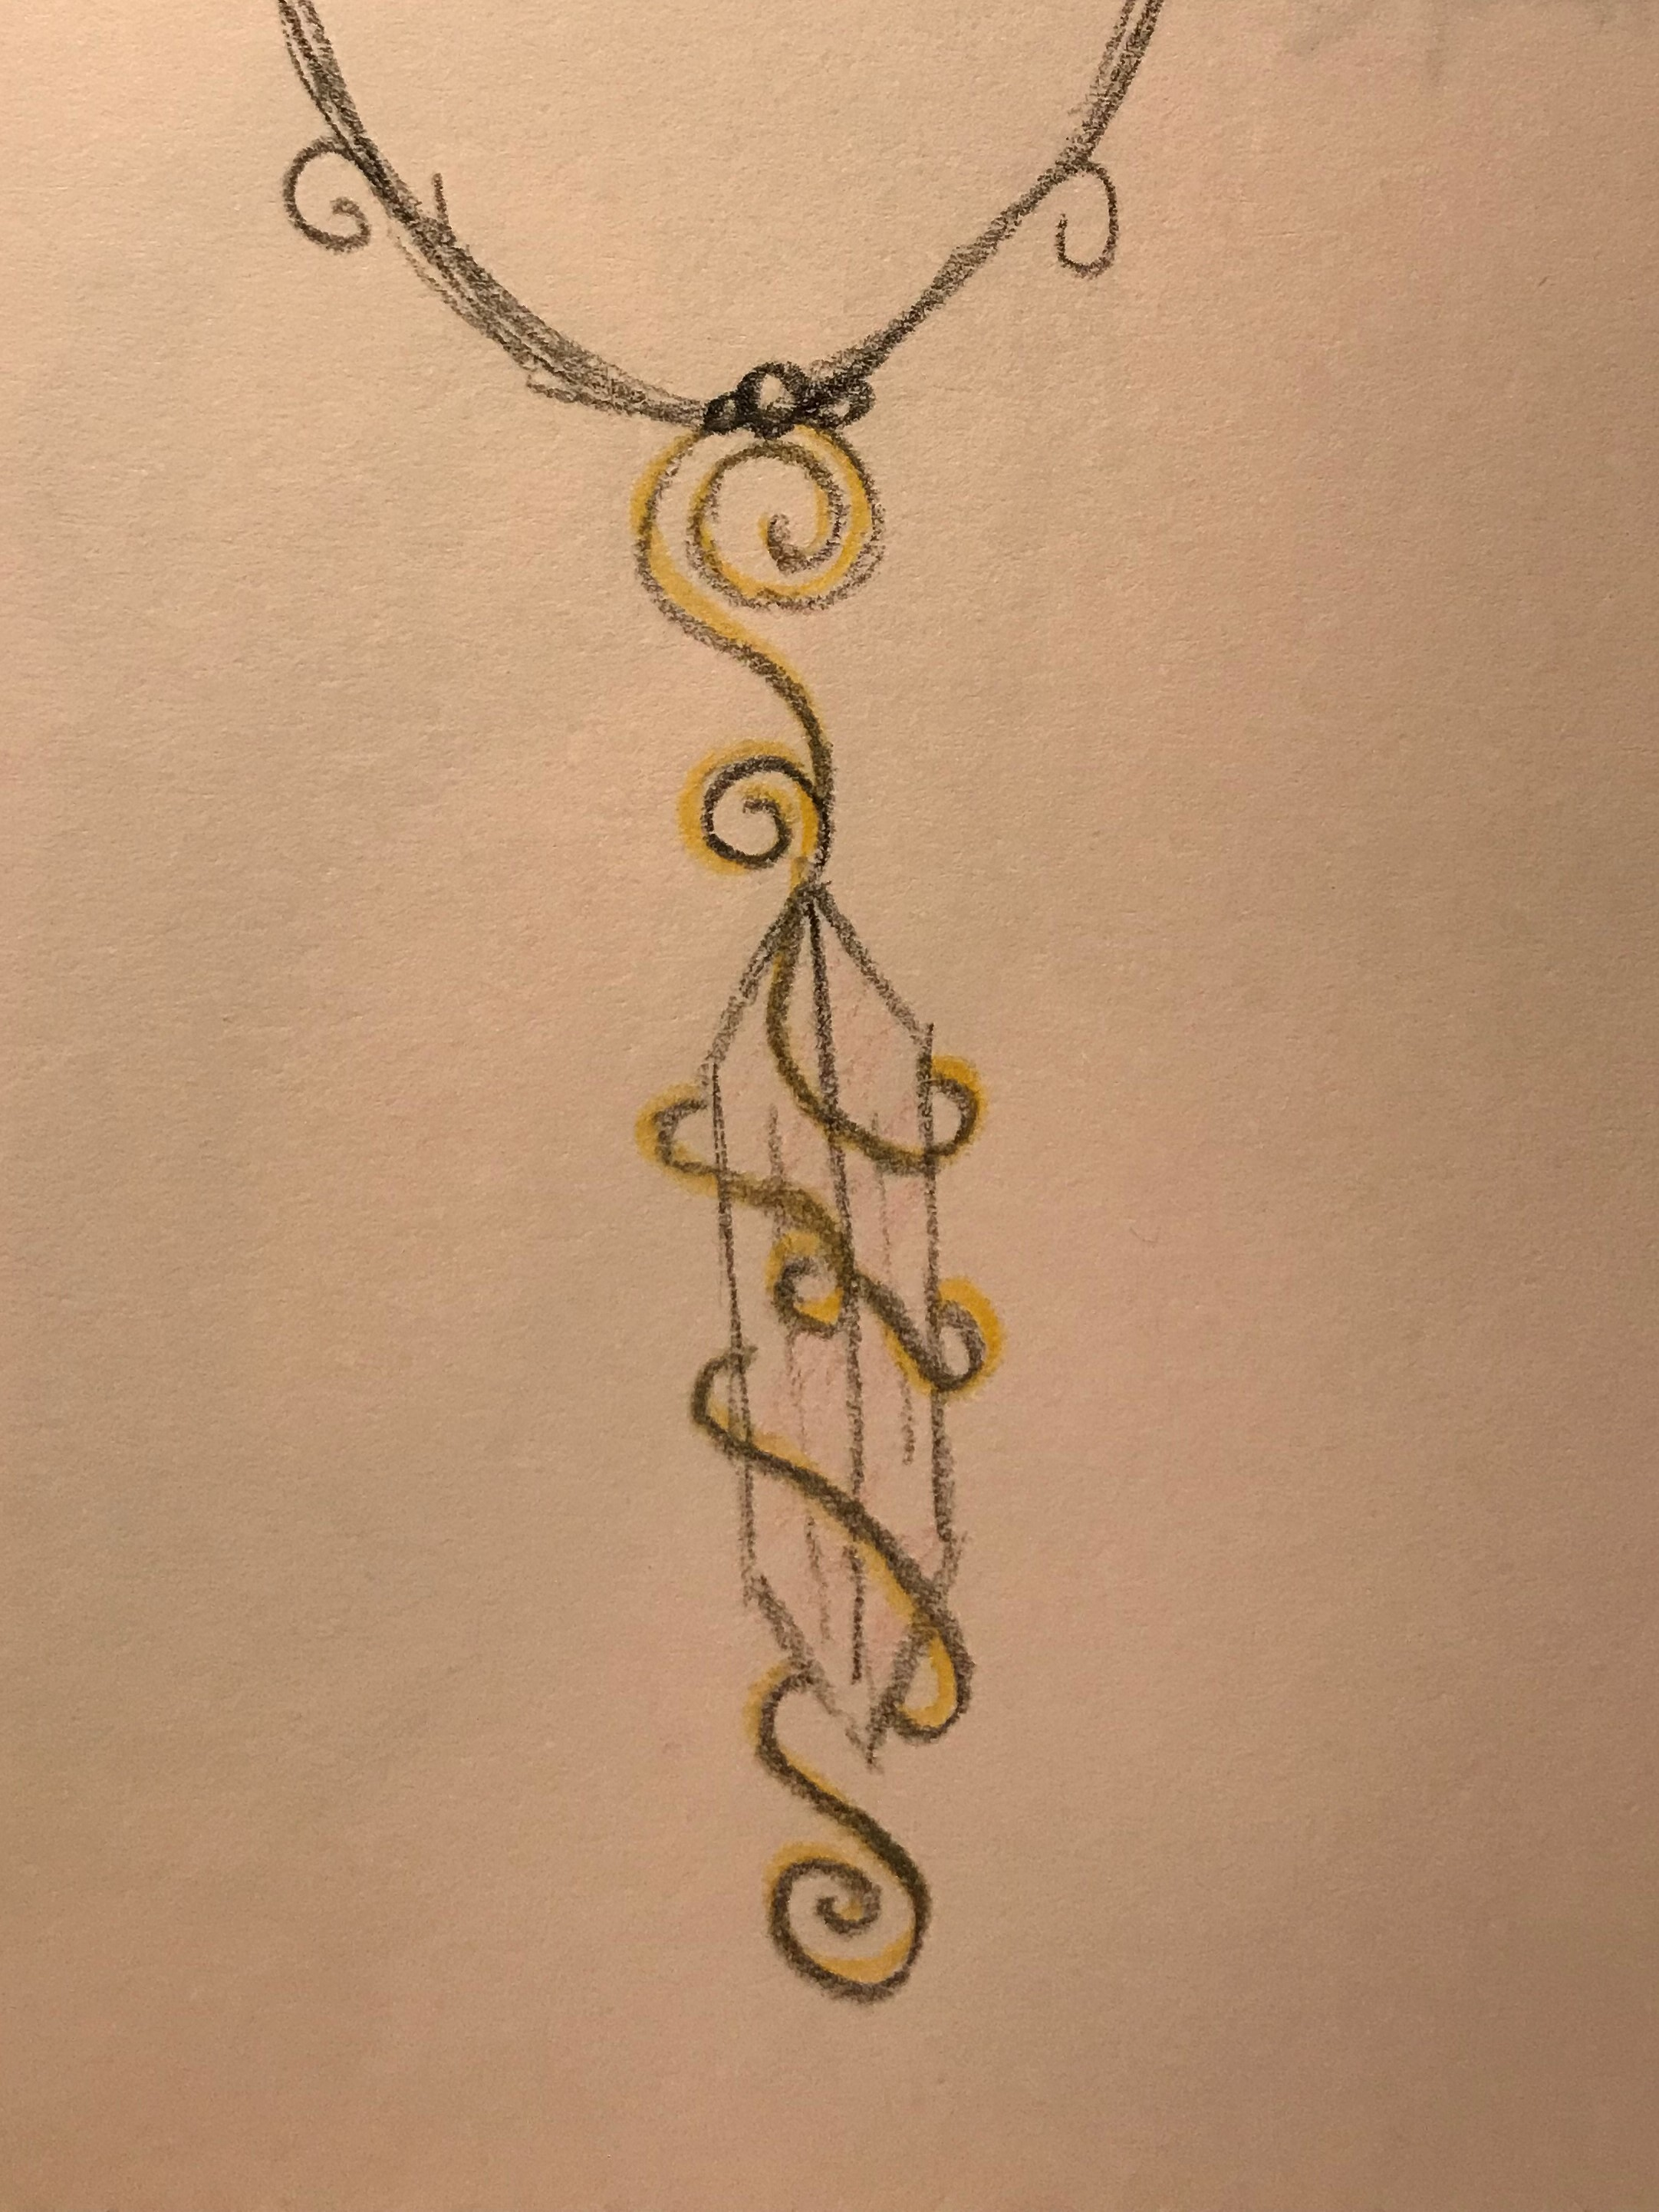 Spiral Wrapped Crystal - This spiral wire wrapped Crystal uses an interesting twist on the usual wire wrapping. I like the extra curls and loops.